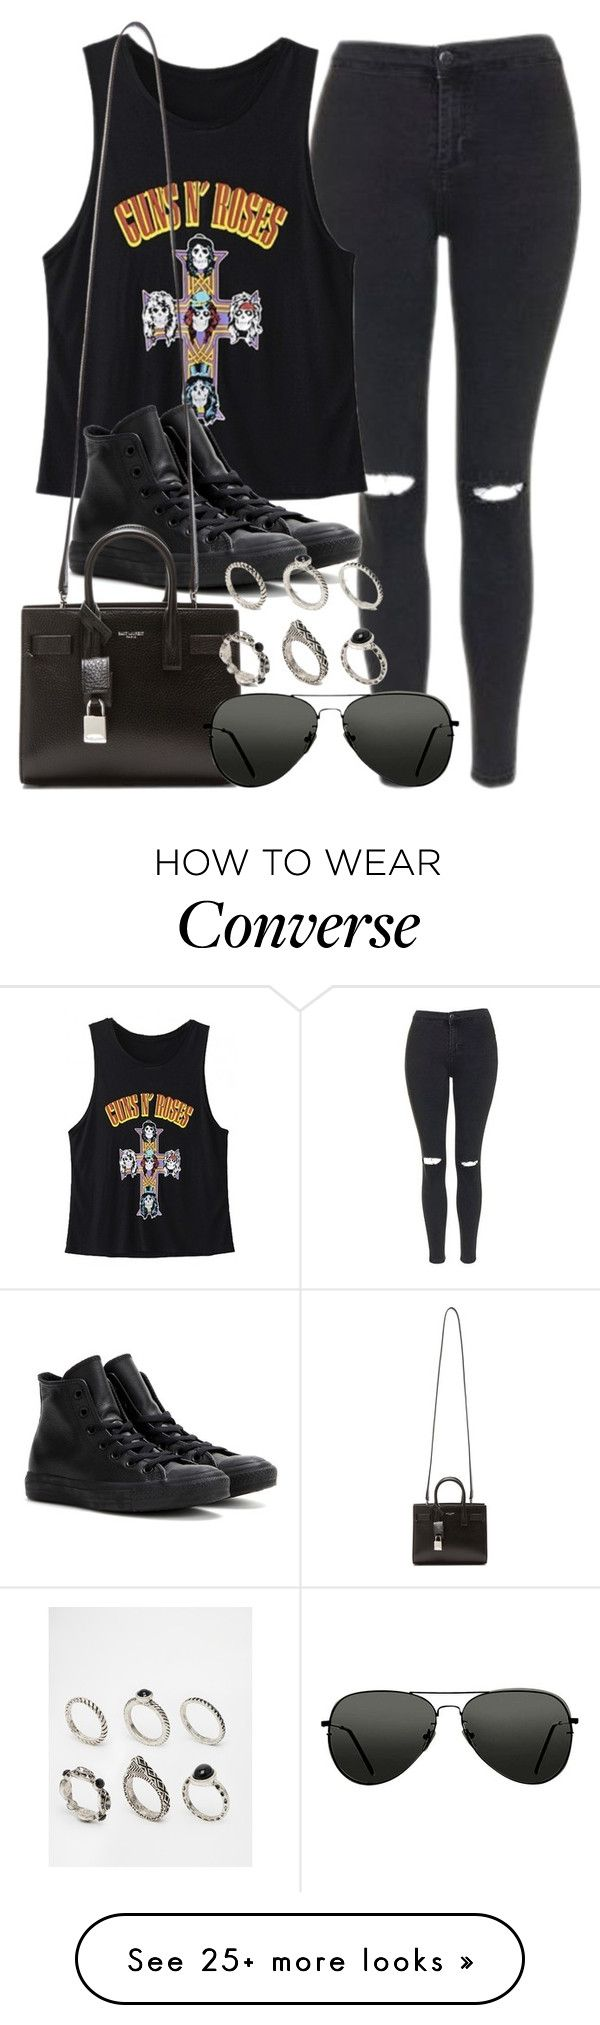 """Style #10488"" by vany-alvarado on Polyvore featuring Topshop, WithChic, Converse, Yves Saint Laurent and ASOS"